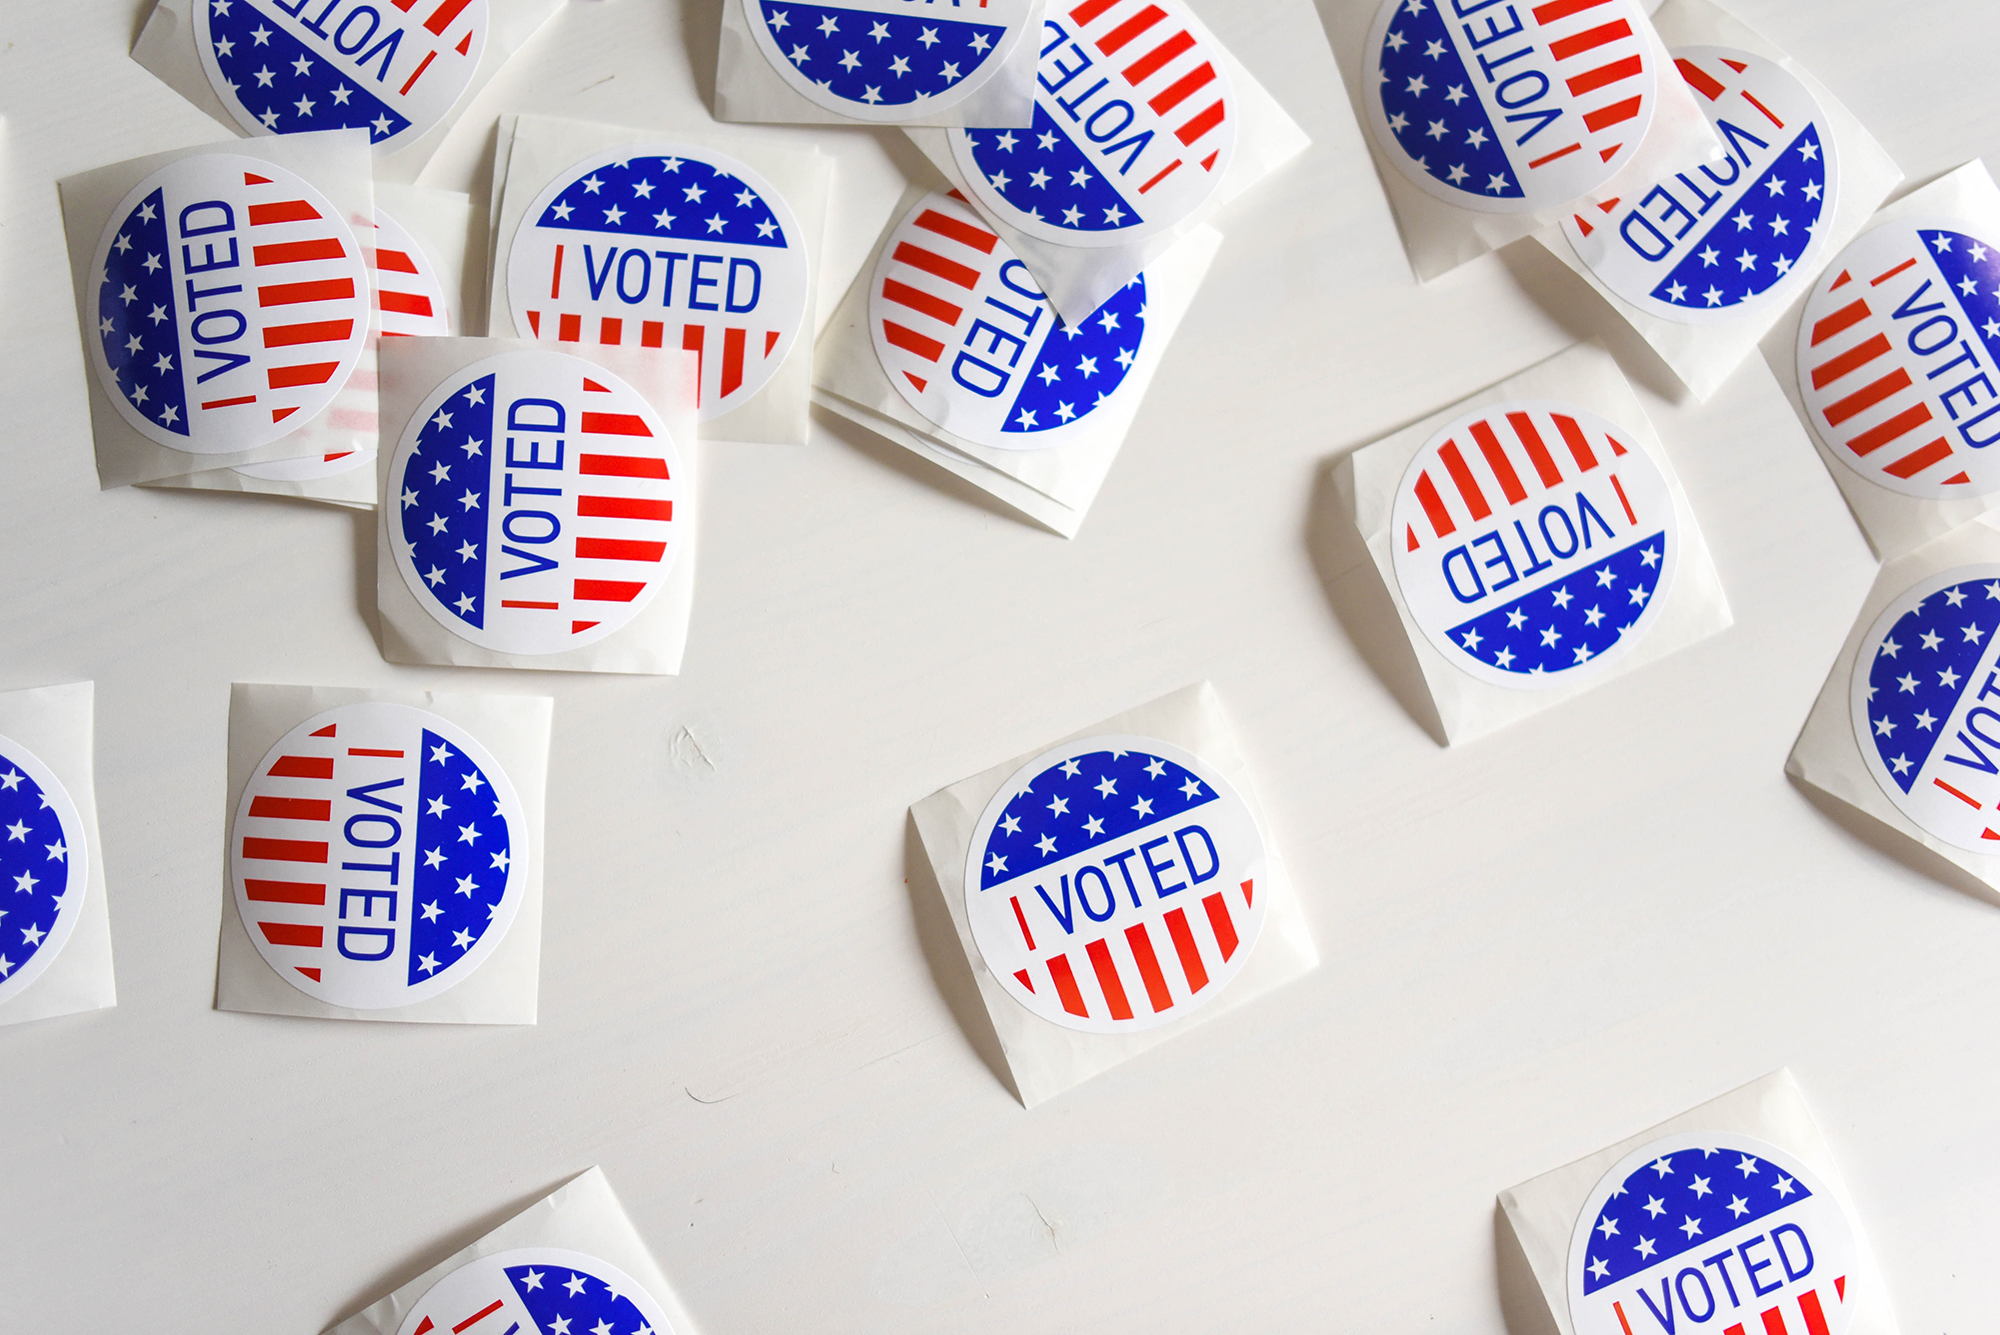 I voted stickers on a white background